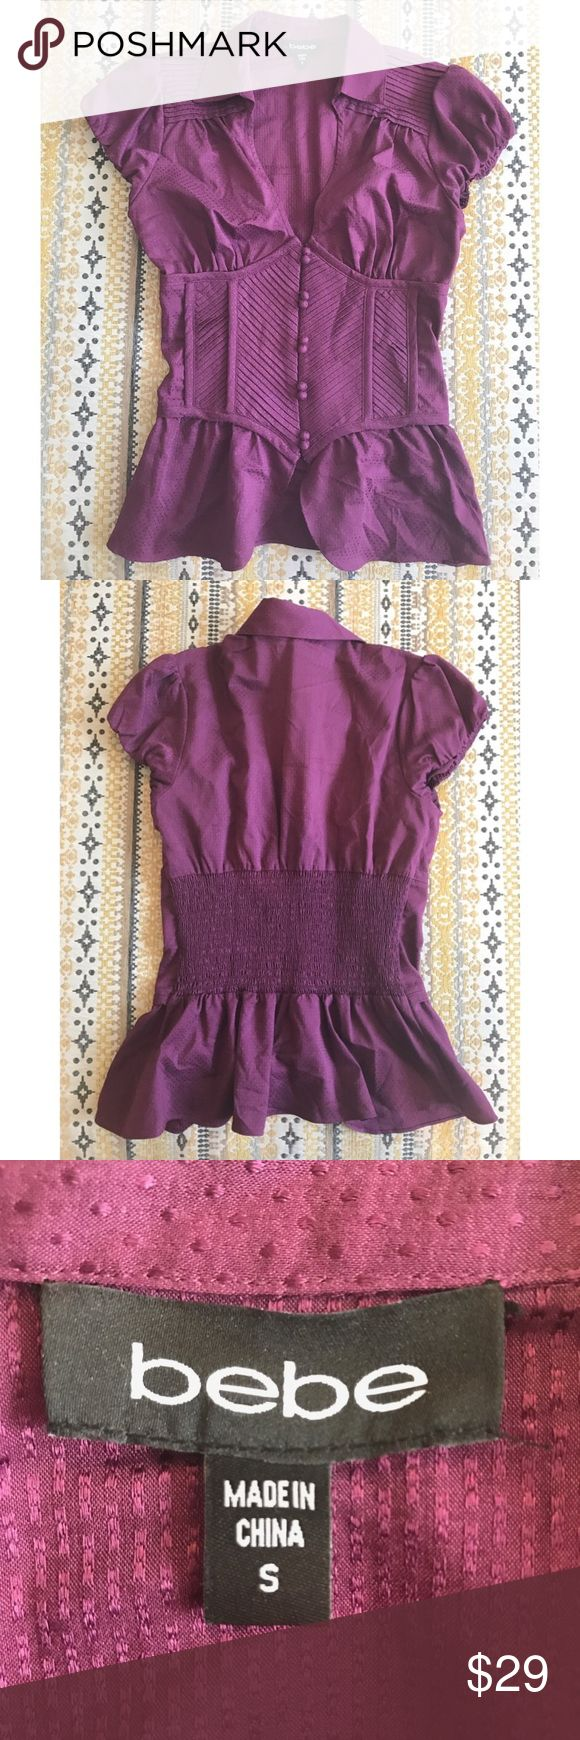 FINAL PRICE REDUCTION NWOT Bebe Top Beautiful and form fitting! Perfect condition! bebe Tops Blouses